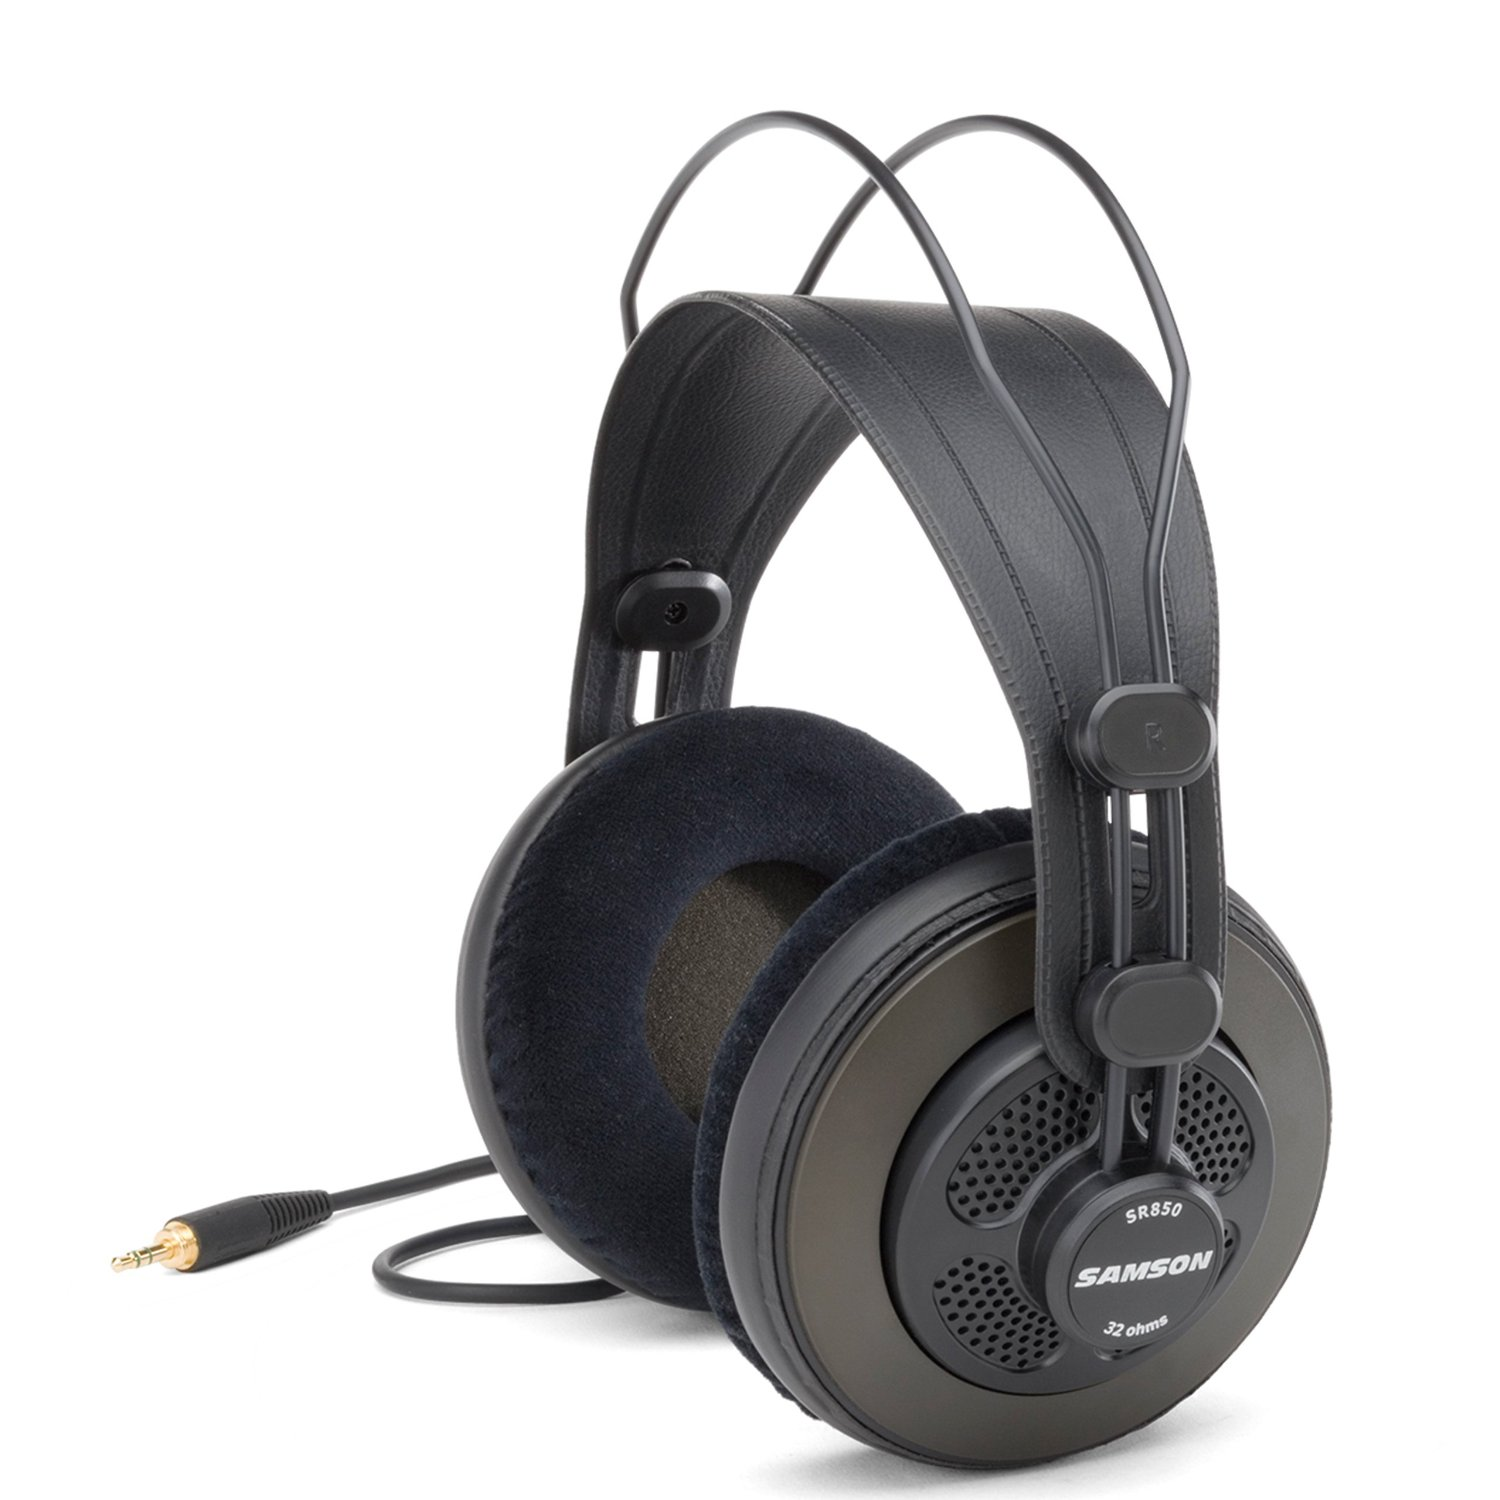 Review: Samson SR850 Studio Headphones